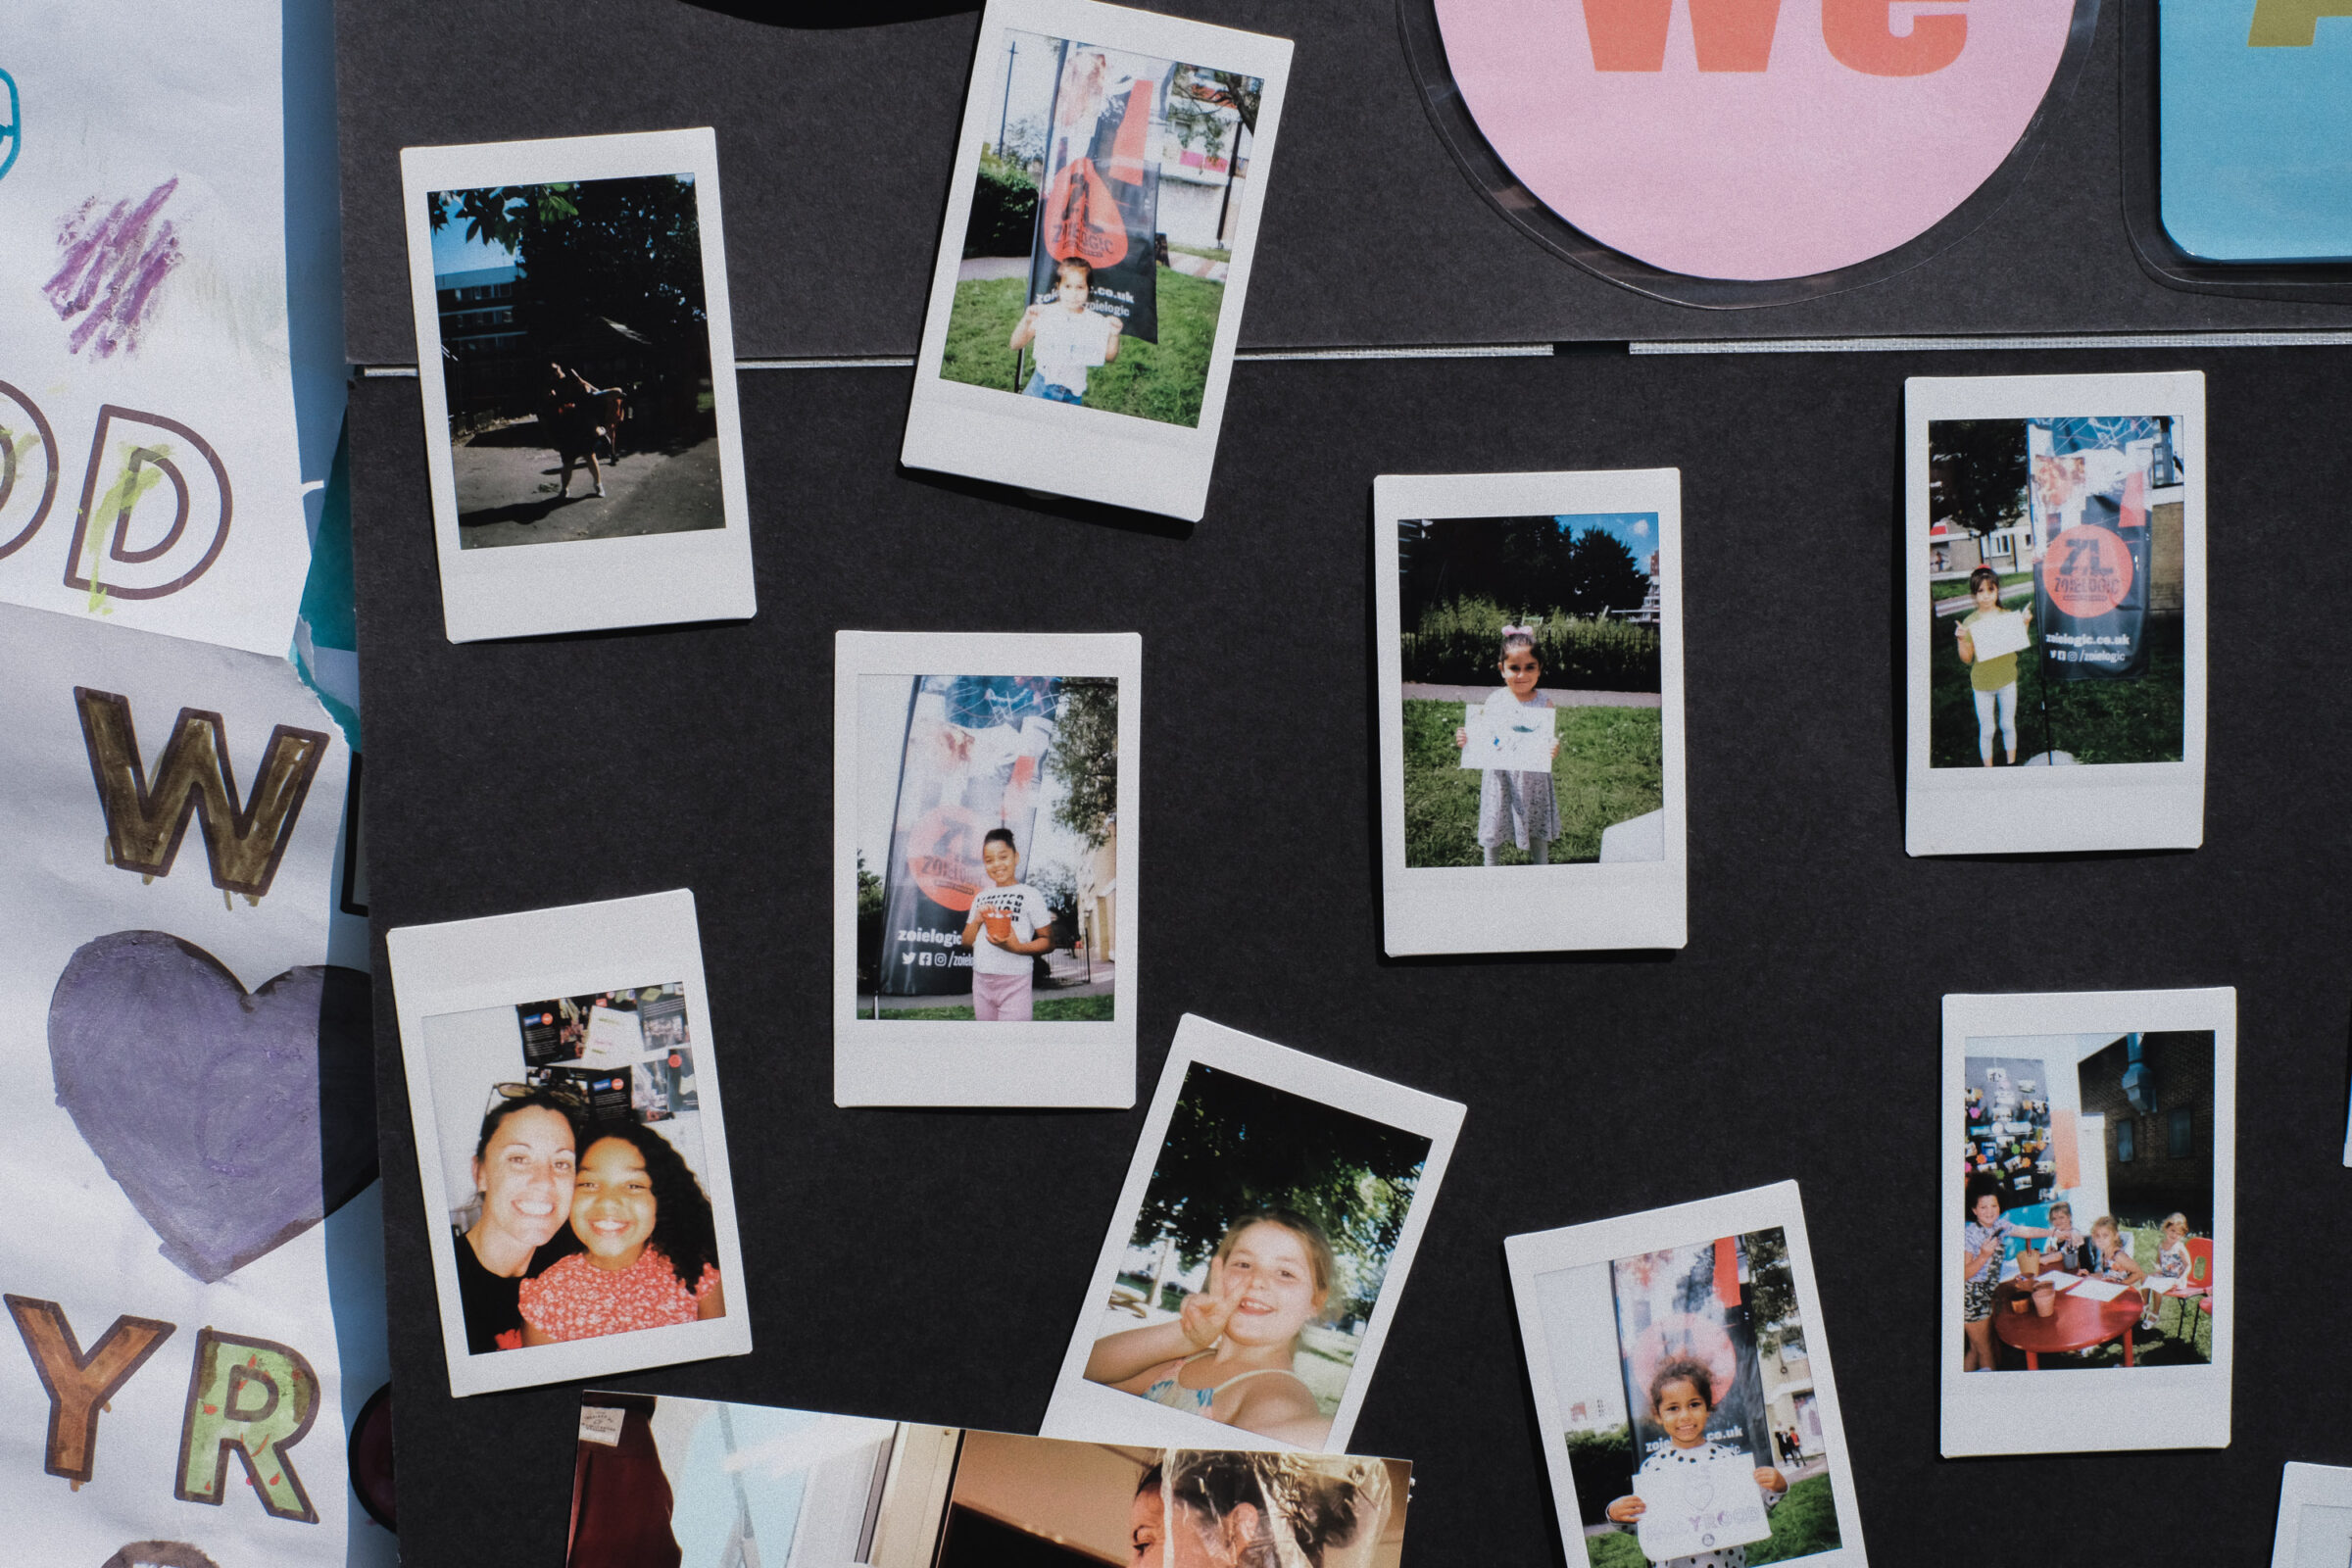 A display featuring instant camera pictures of young people on the Holyrood estate in Southampton